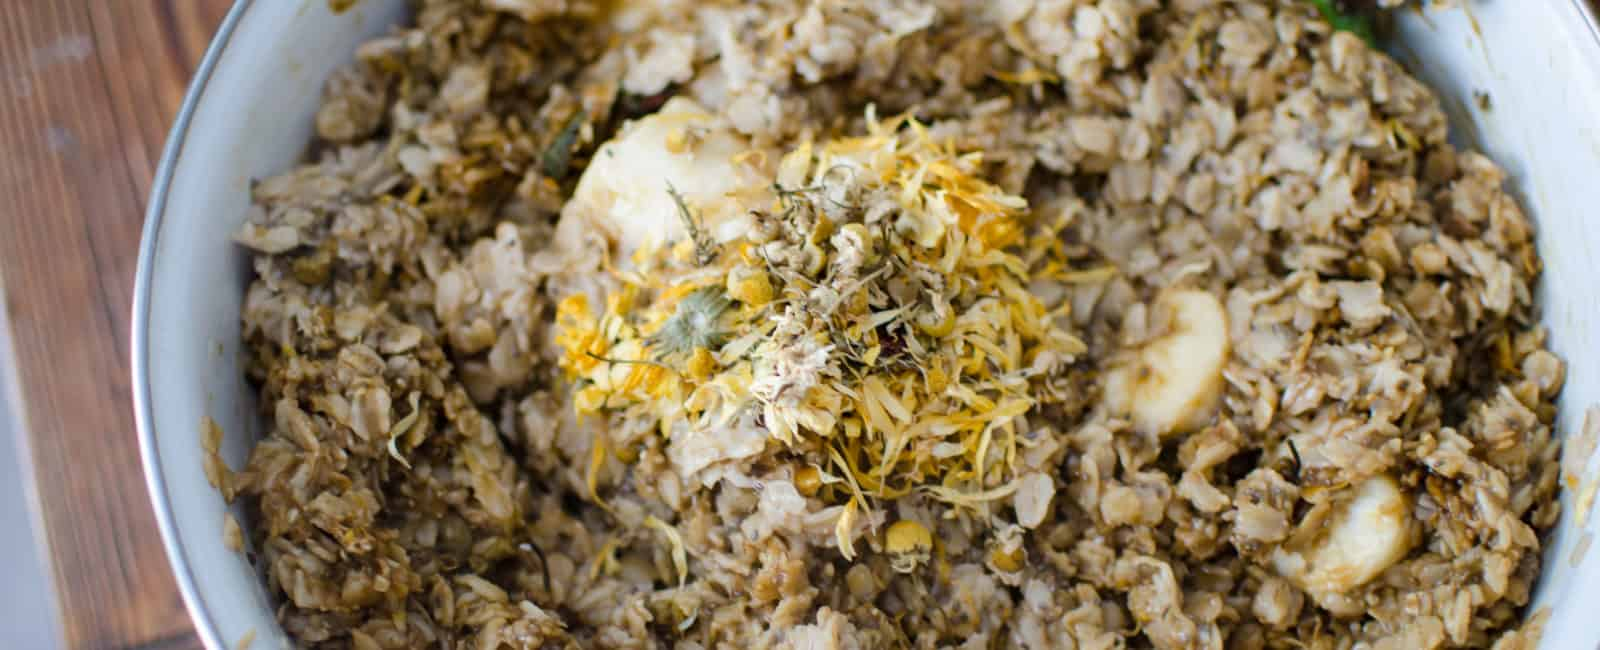 Herbal Oatmeal for Chickens